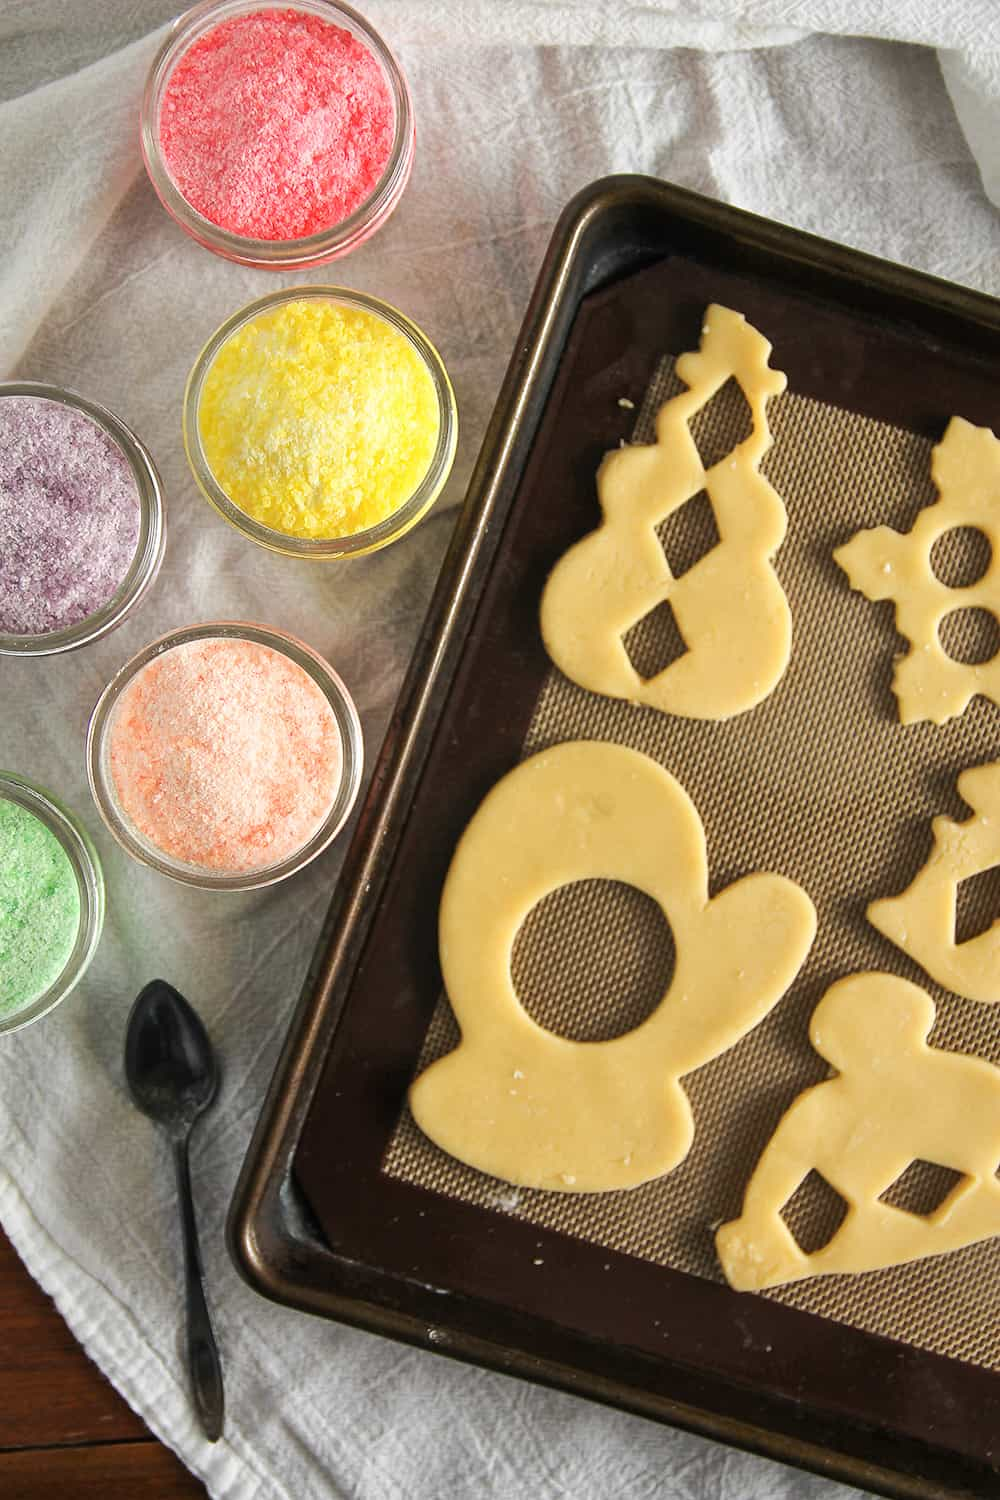 Stained Glass Cookies are a fun way to jazz up cut-out sugar cookies!